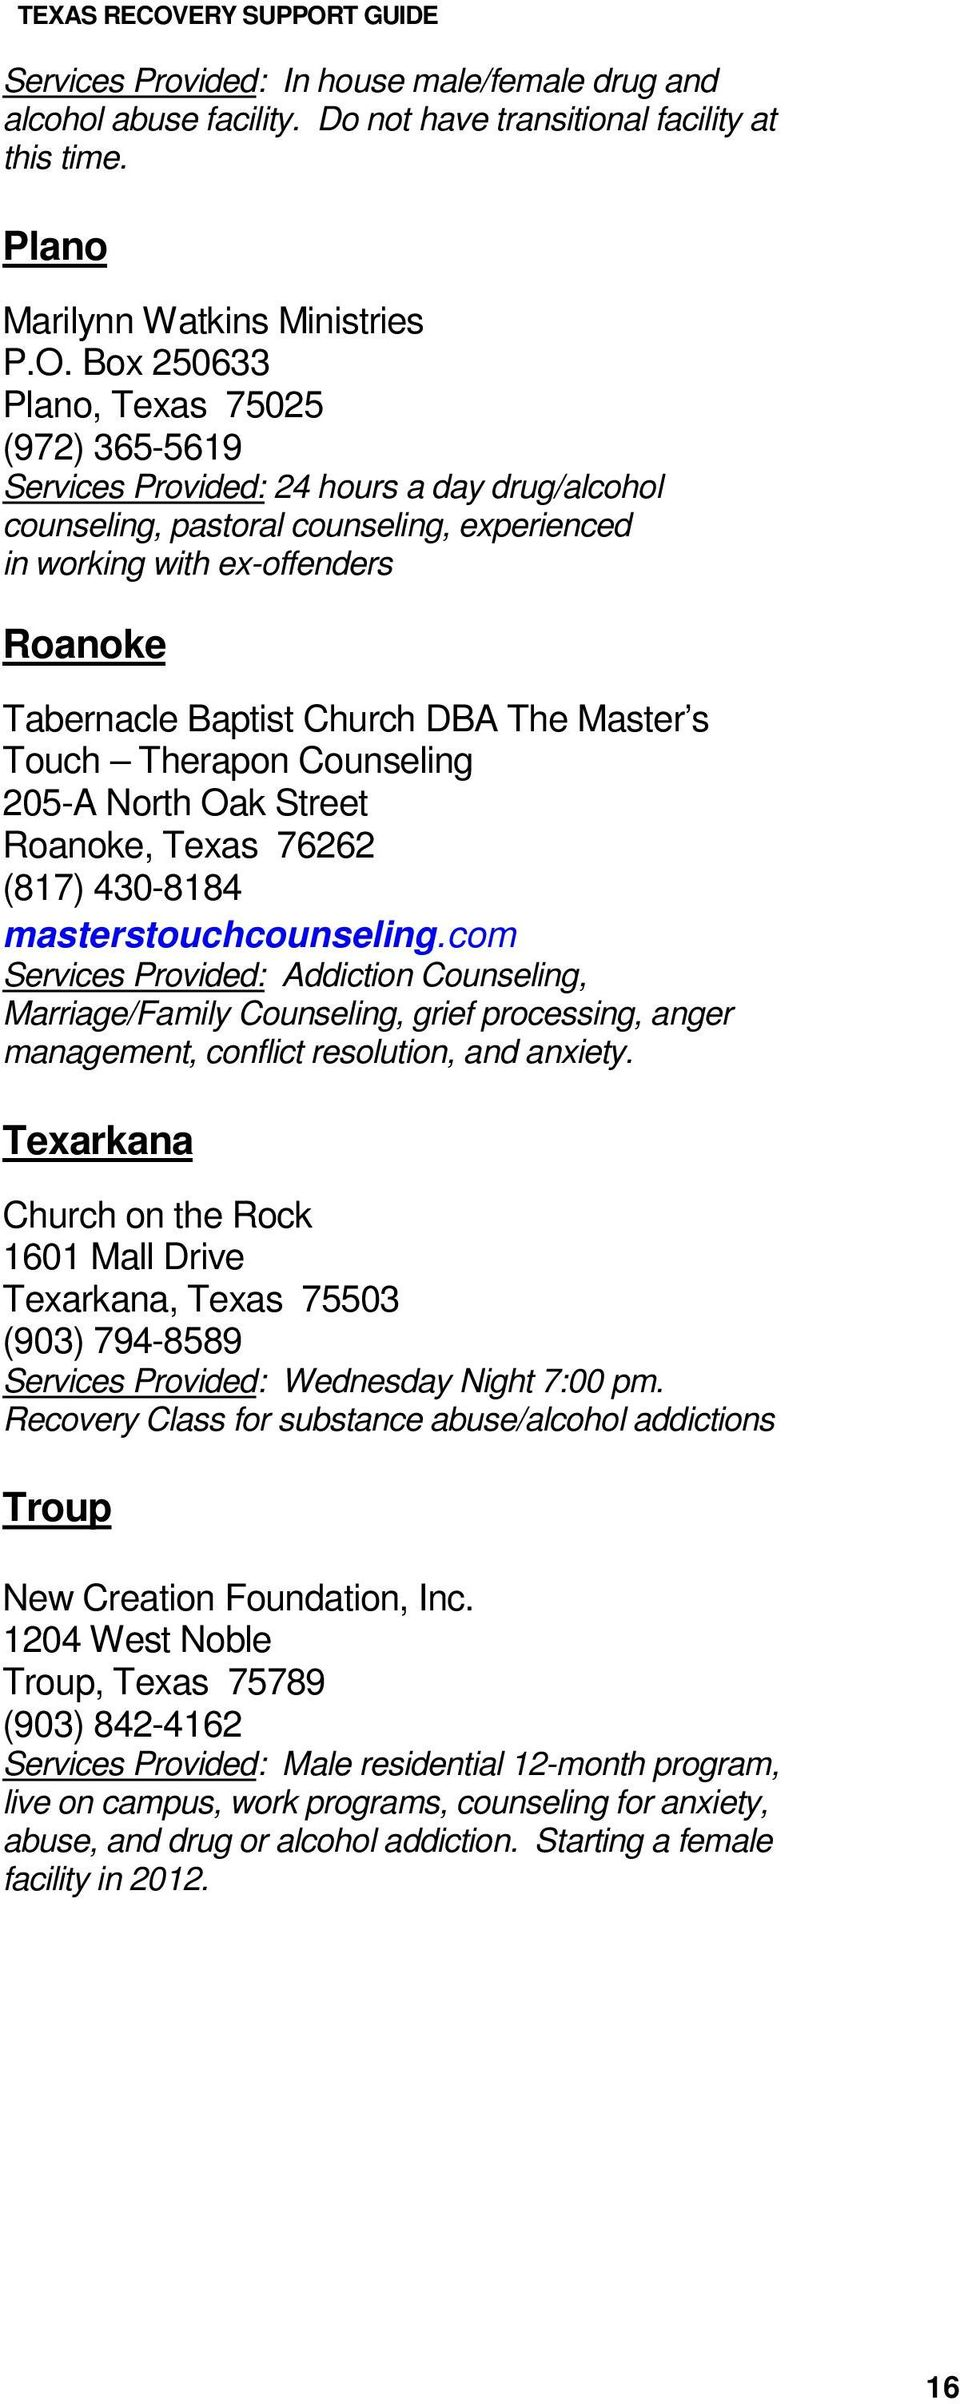 DBA The Master s Touch Therapon Counseling 205-A North Oak Street Roanoke, Texas 76262 (817) 430-8184 masterstouchcounseling.